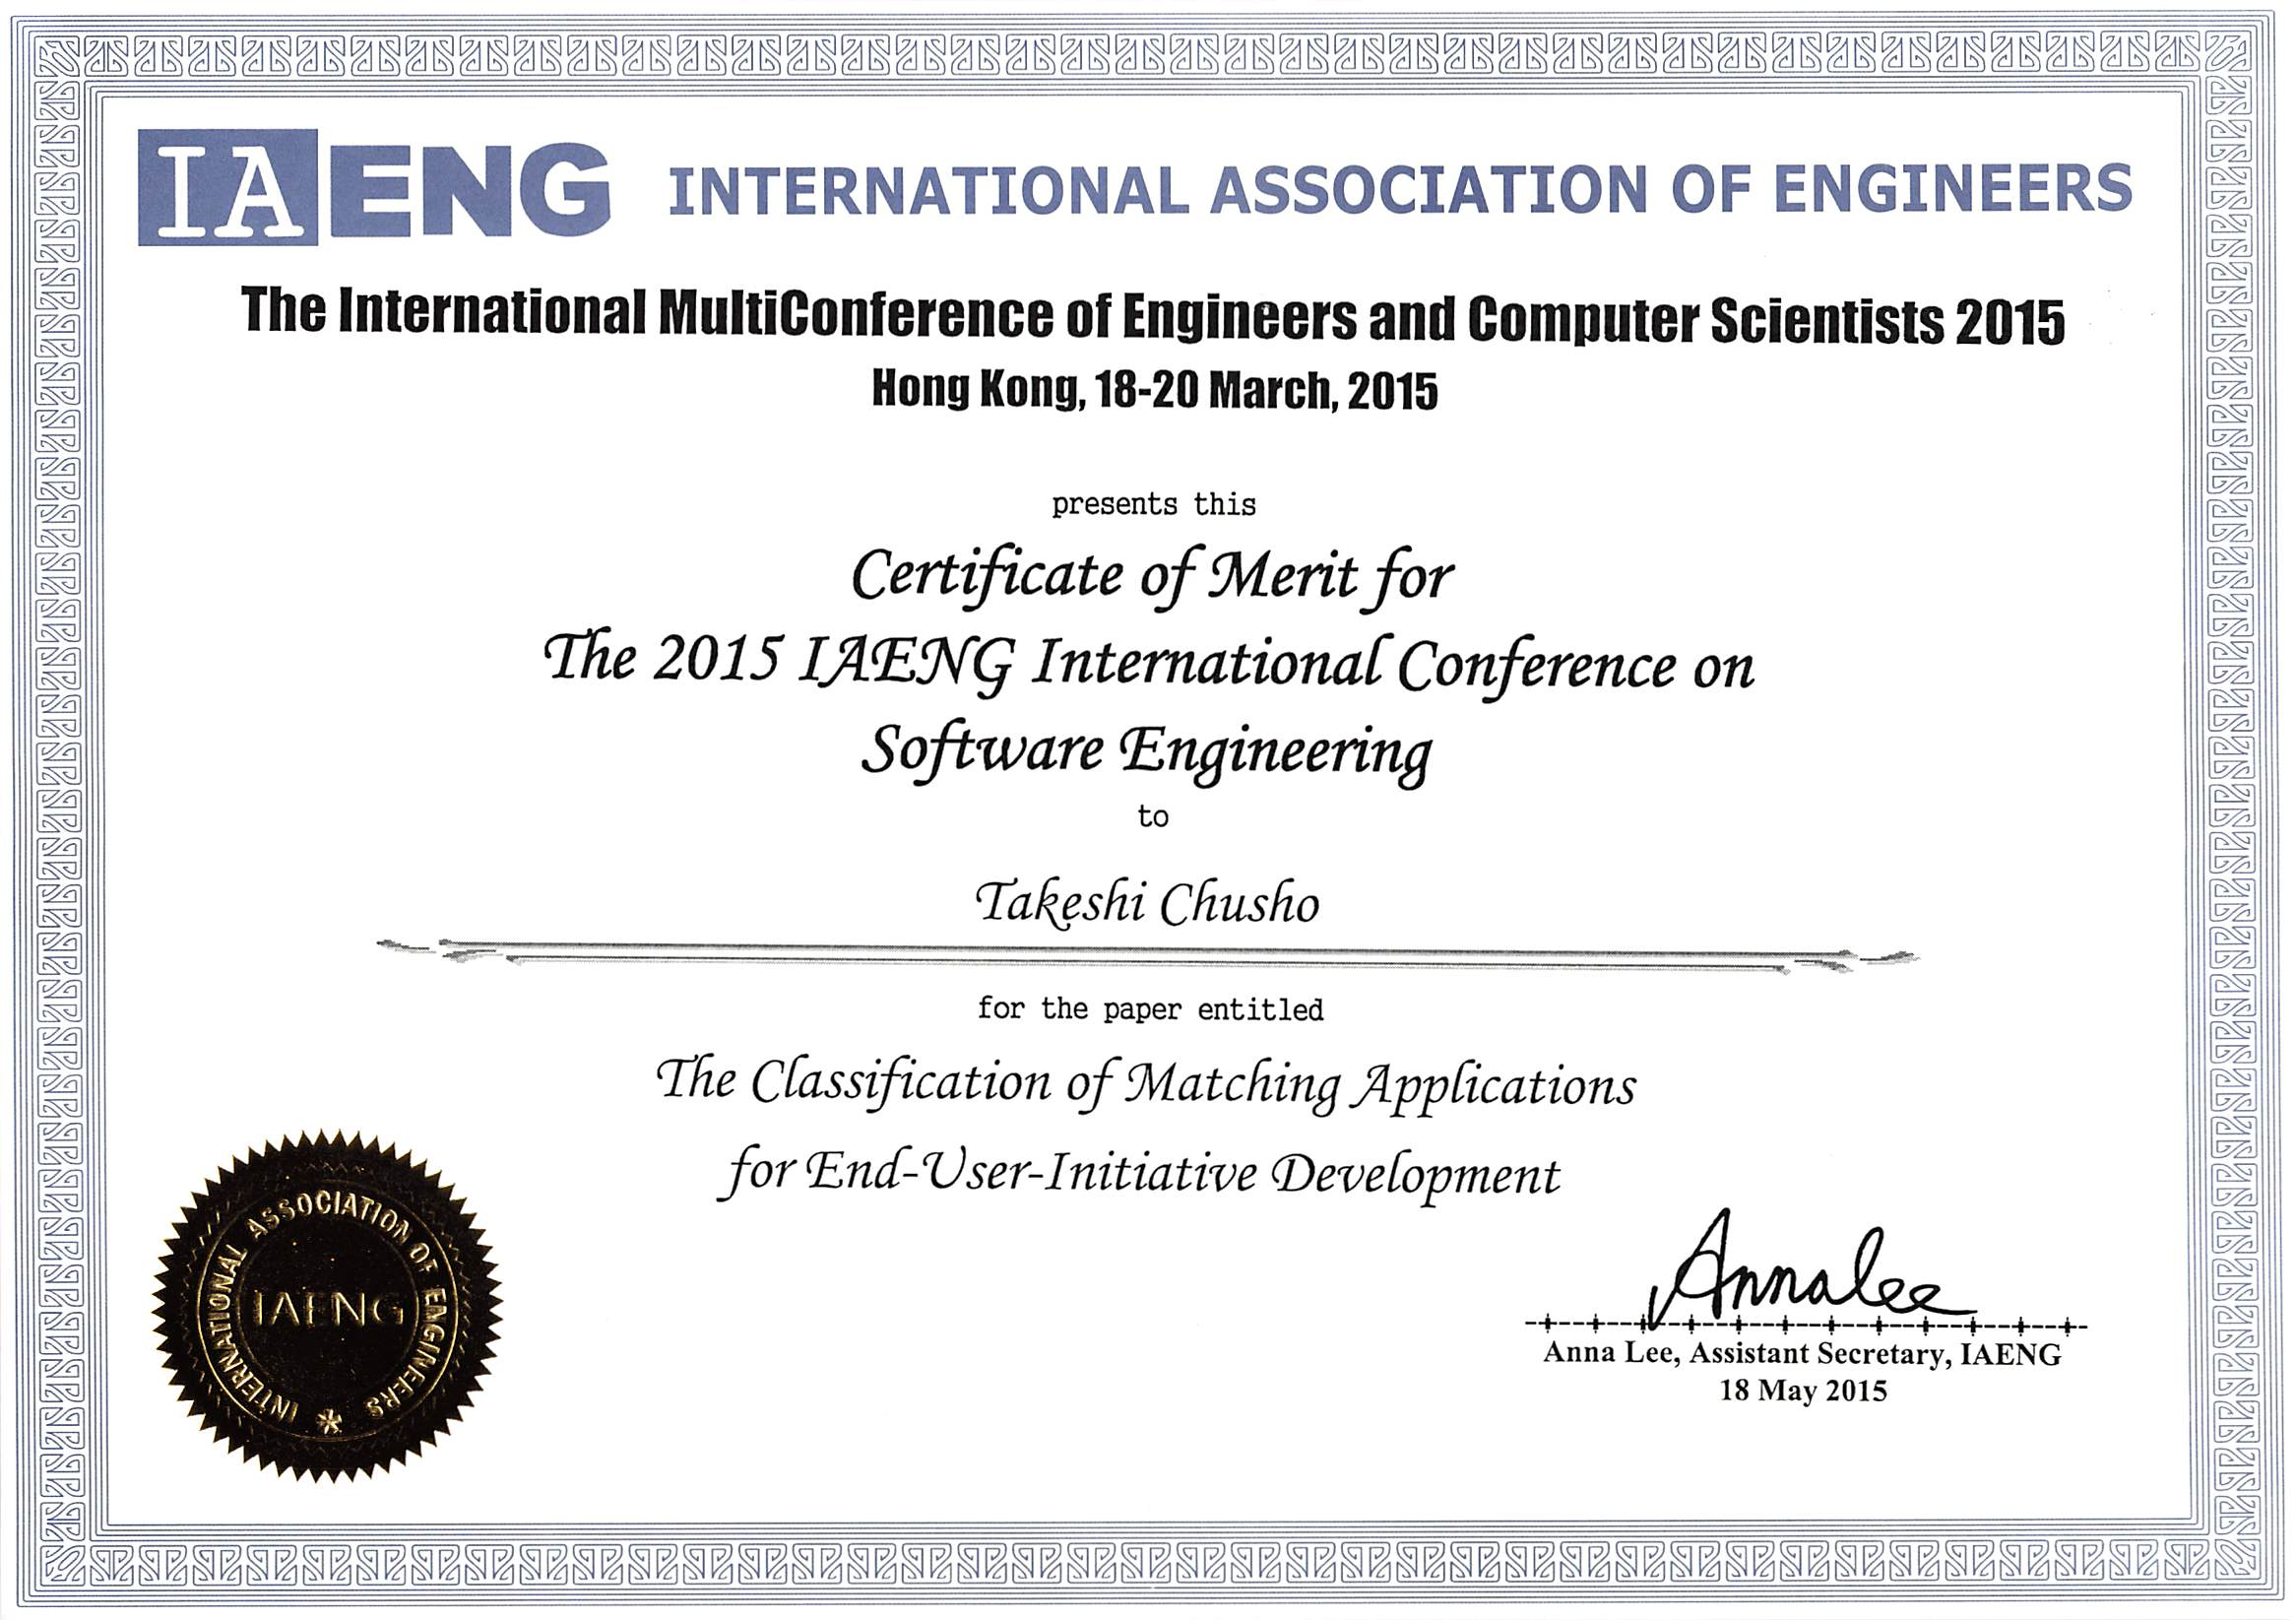 certificate of merit for the 2015 iaeng international conference on